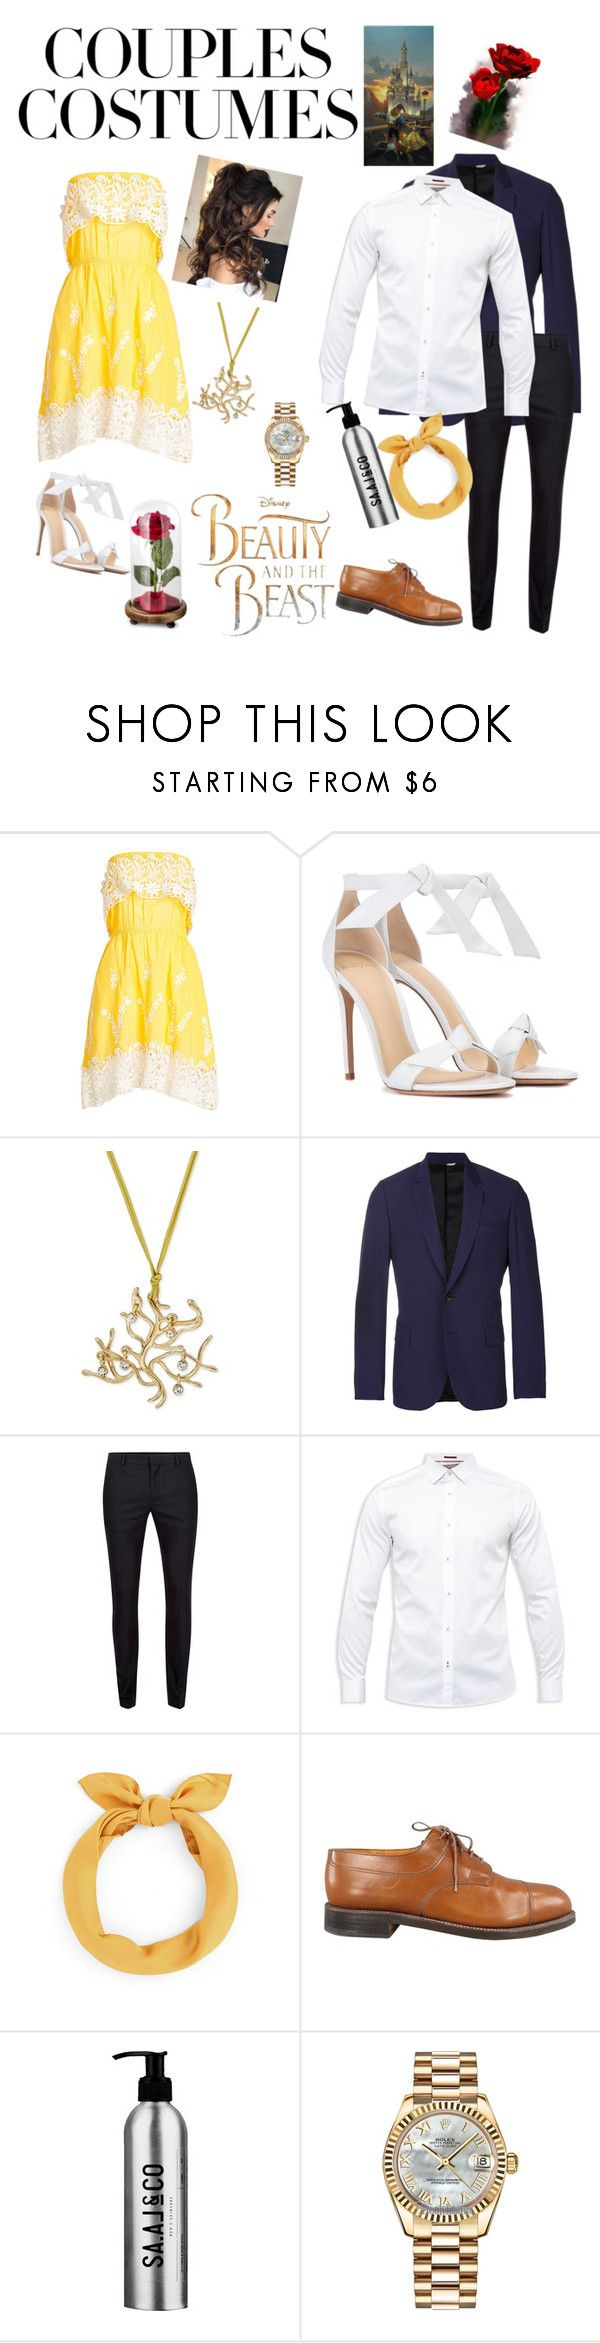 """Modern Beauty and the Beast"" by that-gurl-mia ❤ liked on Polyvore featuring Christophe Sauvat, Alexandre Birman, PS Paul Smith, Topman, Ted Baker, J.M. Weston, Rolex, Disney and modern"